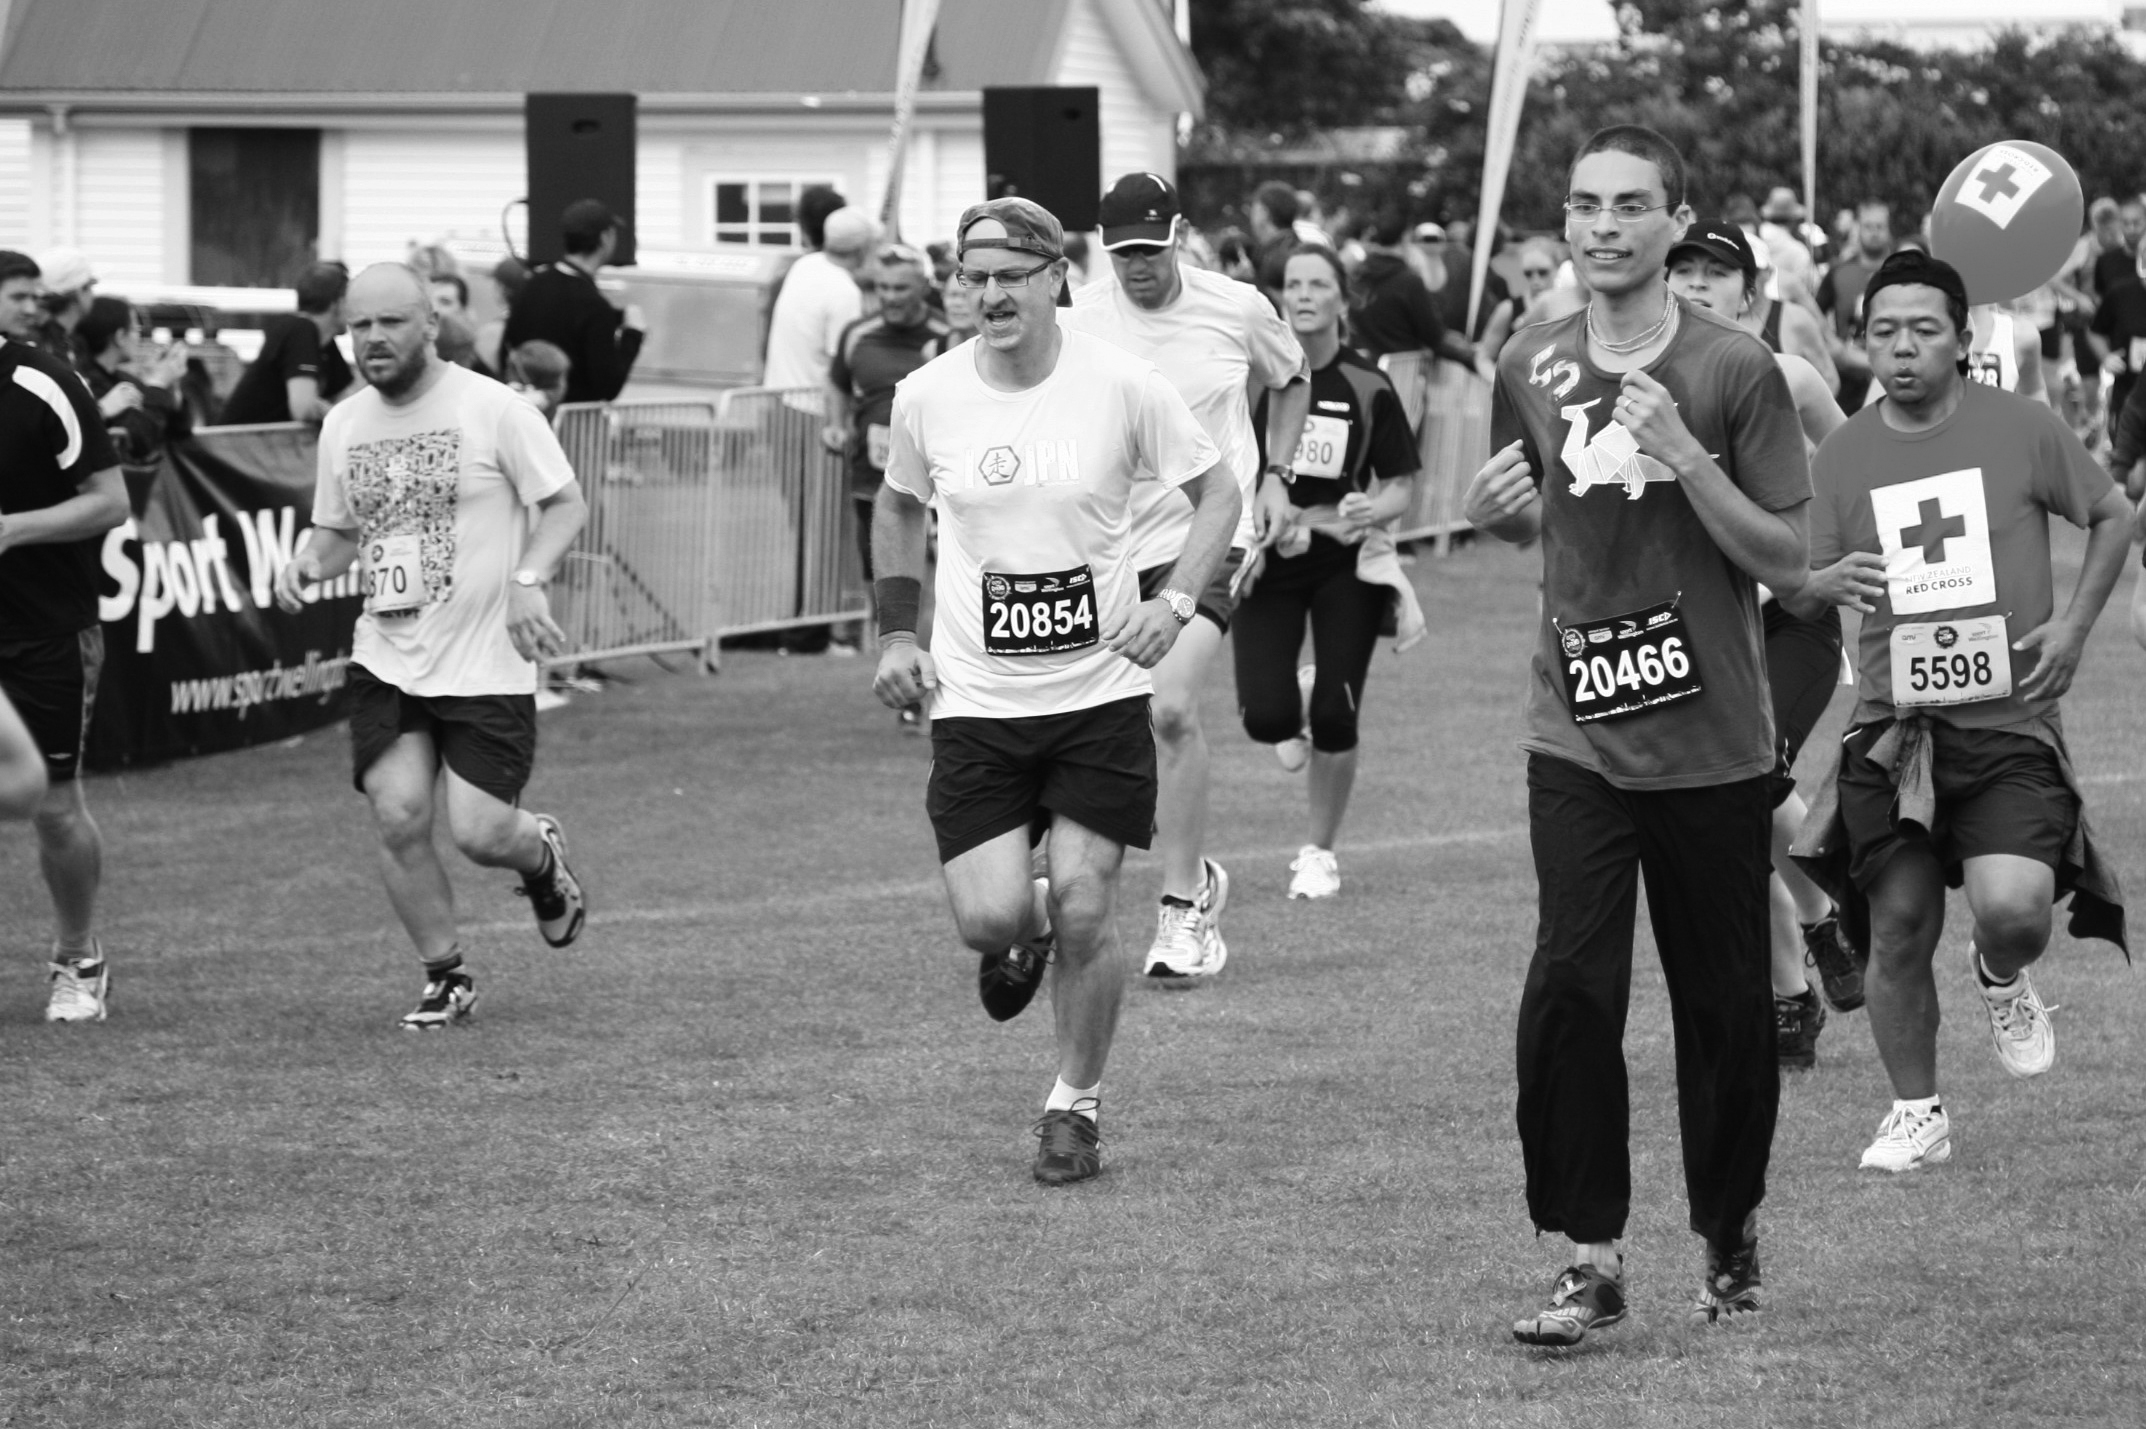 That's me in the front running the half-marathon